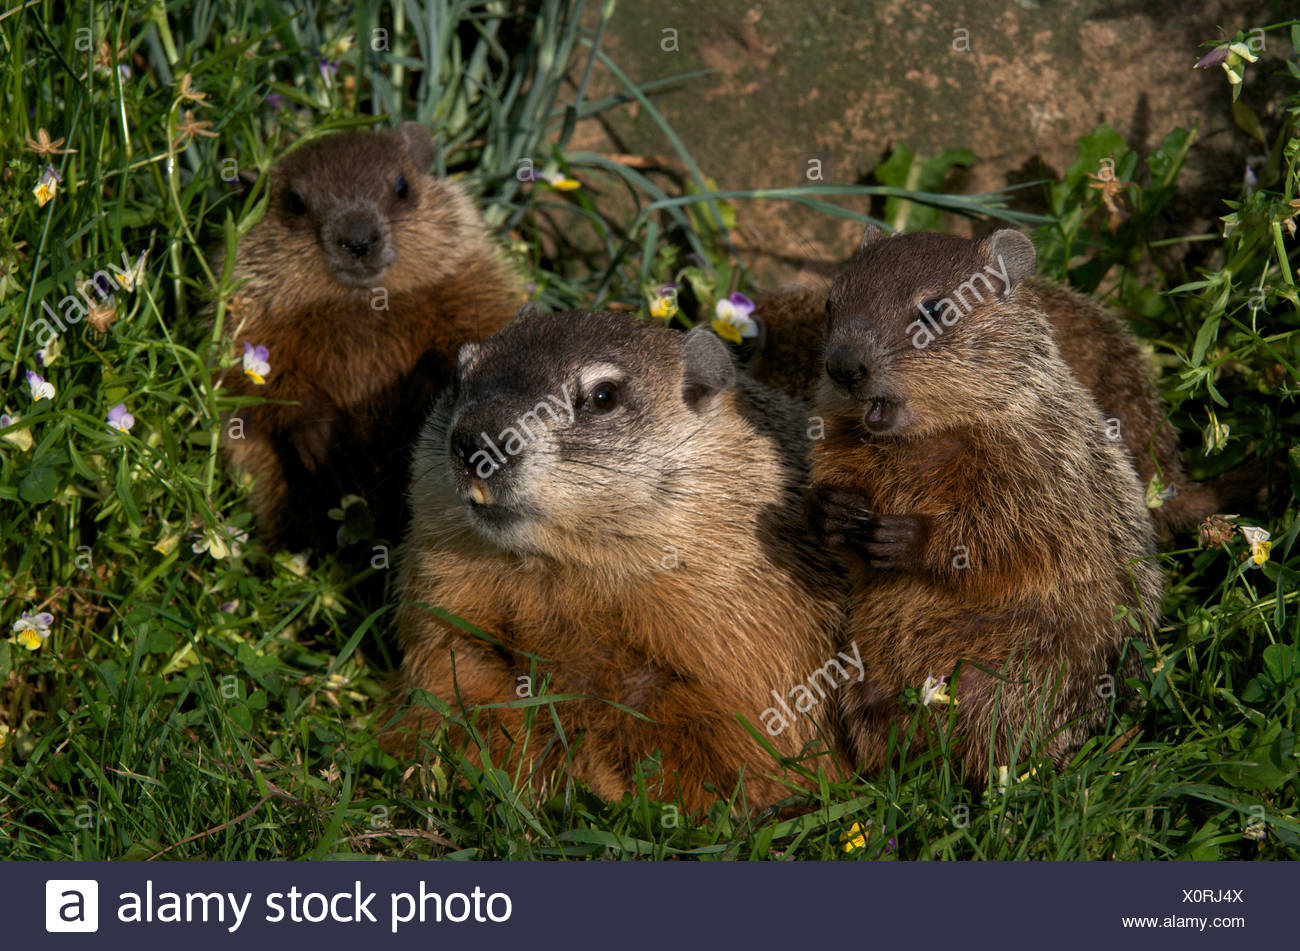 Mother and baby woodchucks ((Marmota monax) near den entrance with spring flowers all around. North America. - Stock Image